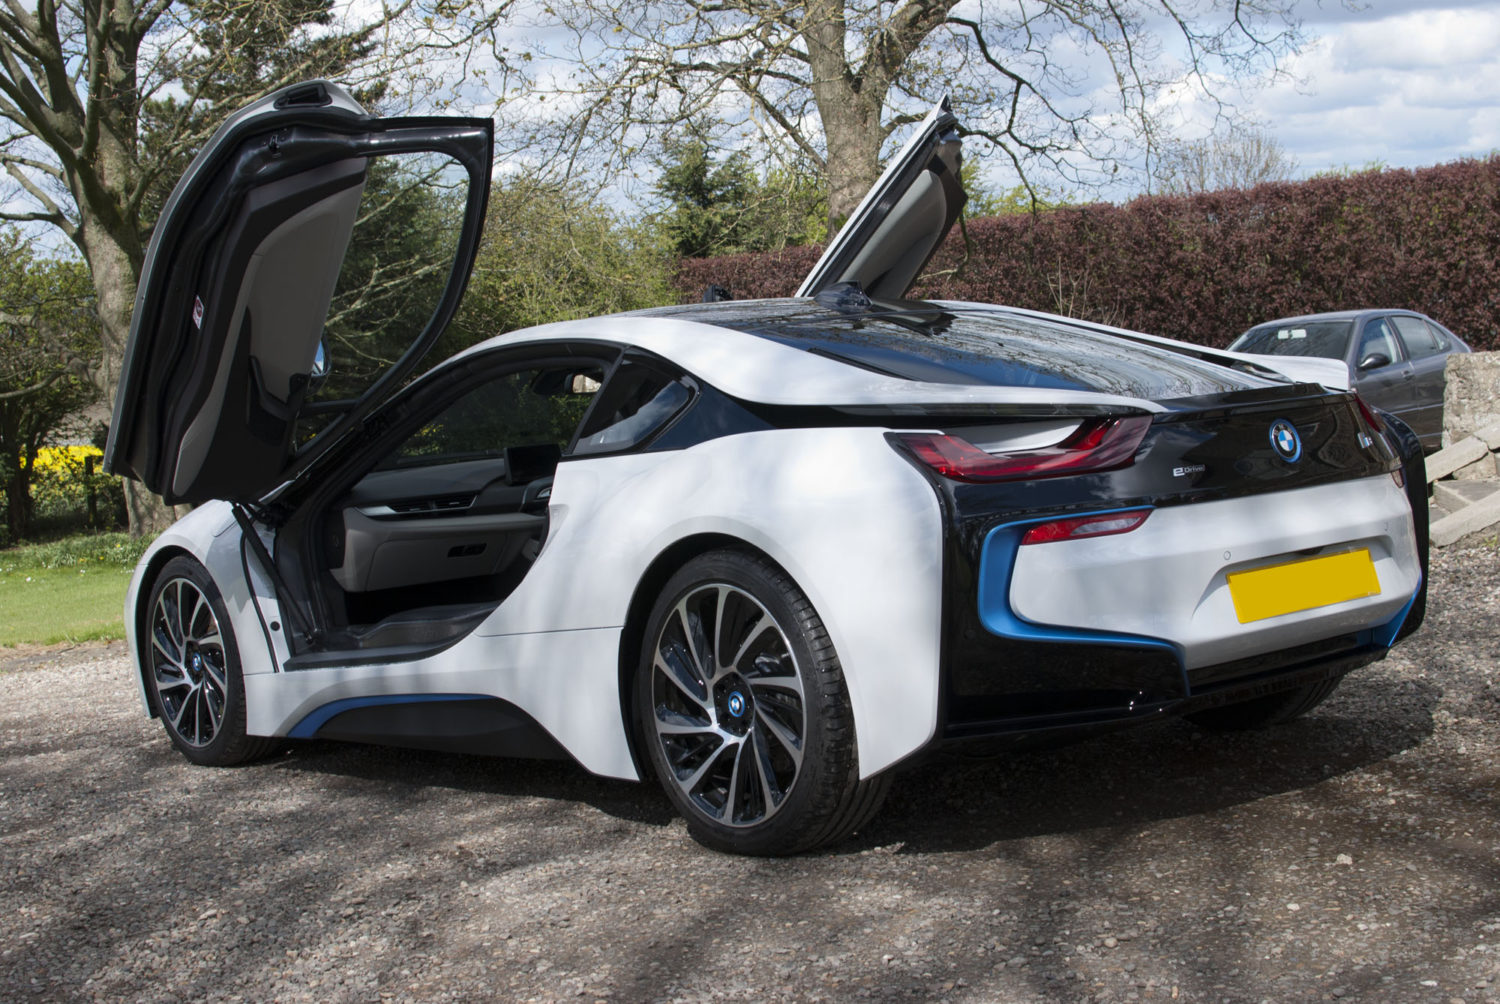 BMW i8 Detailed by DWR Detailing